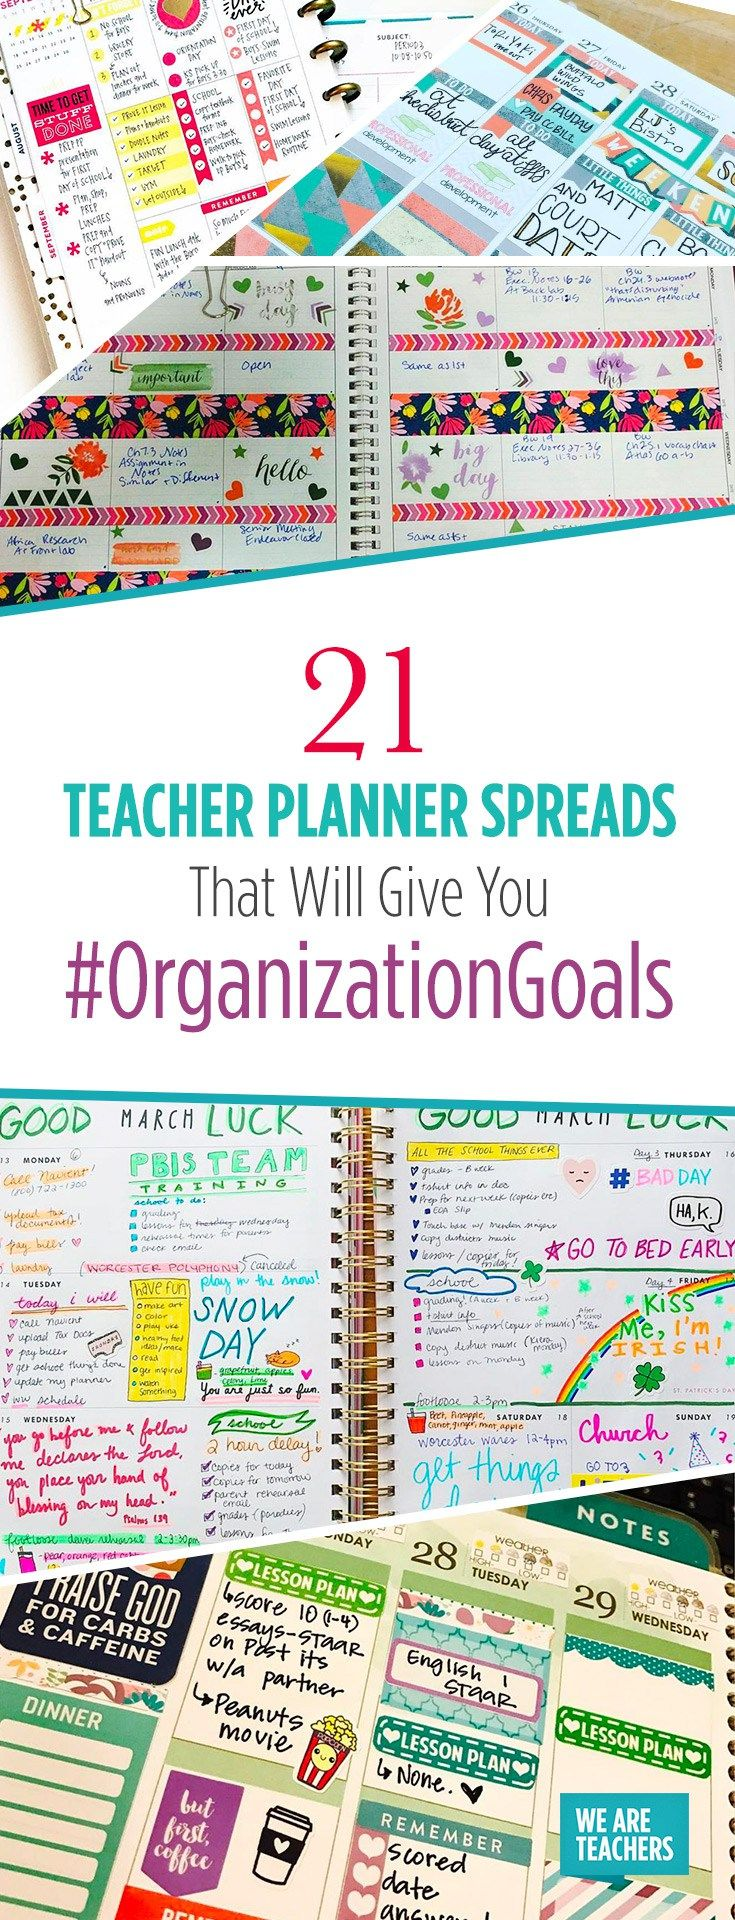 21 Teacher Planner Spreads That Will Give You #OrganizationGoals - WeAreTeachers